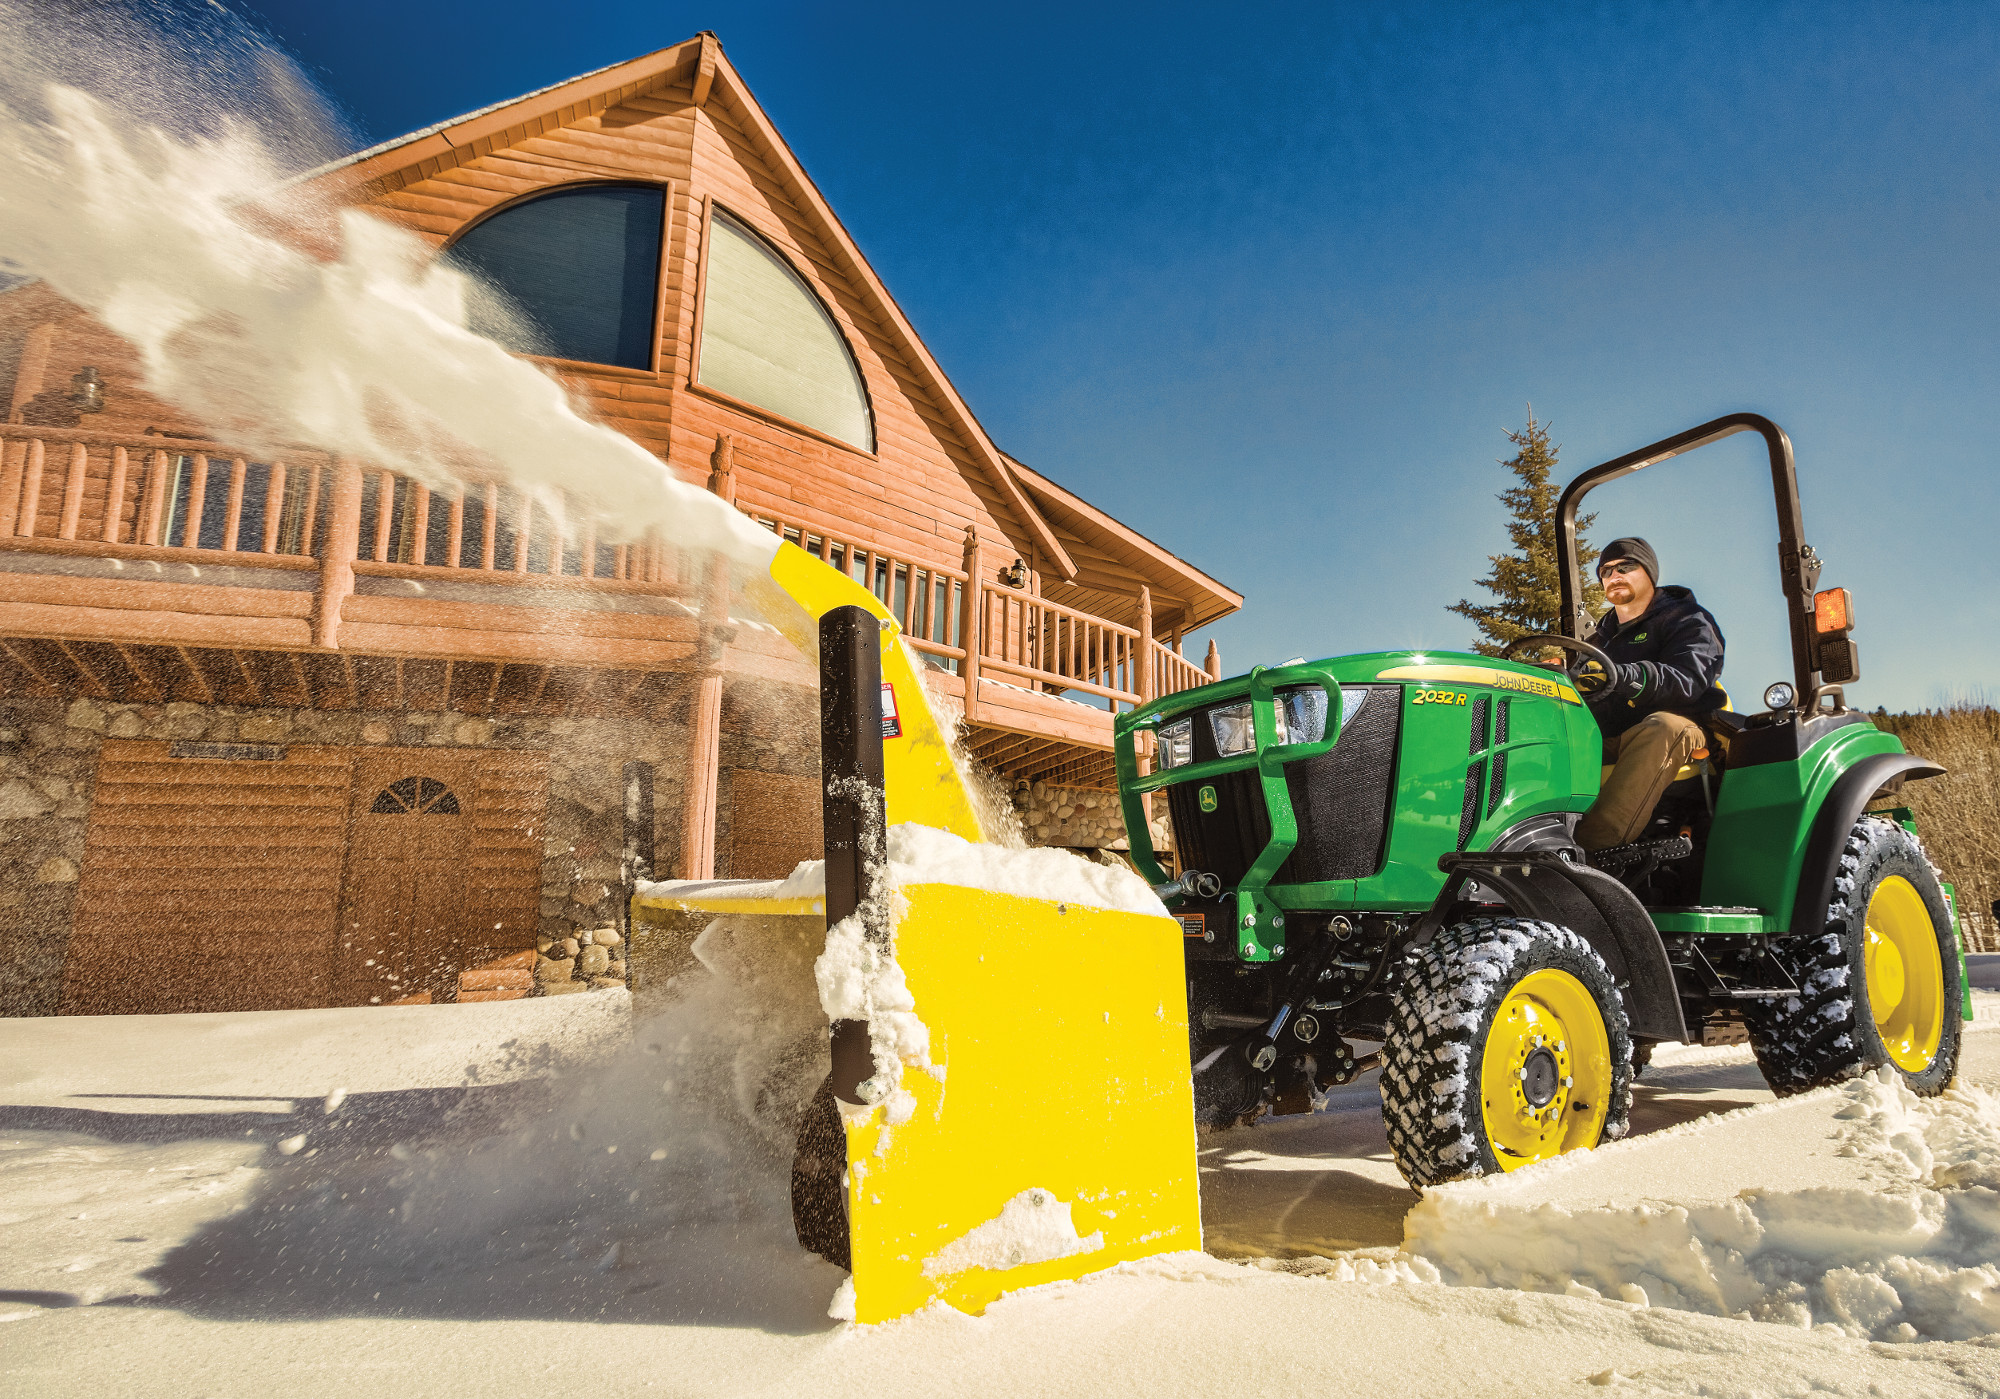 John Deere 2 Series with front mounted snow blower